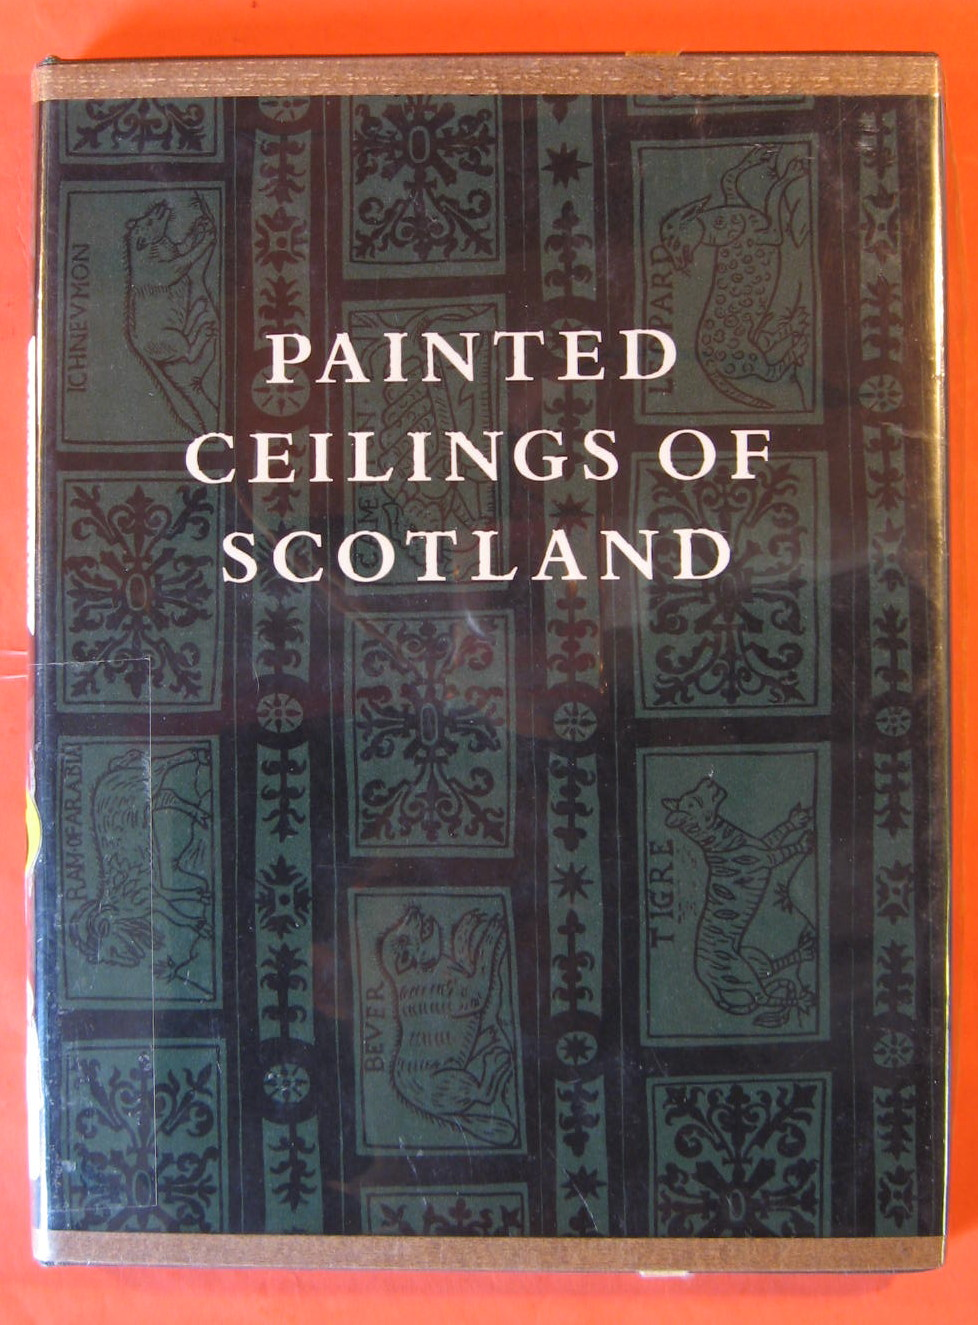 Image for Painted Ceilings of Scotland 1550 - 1650